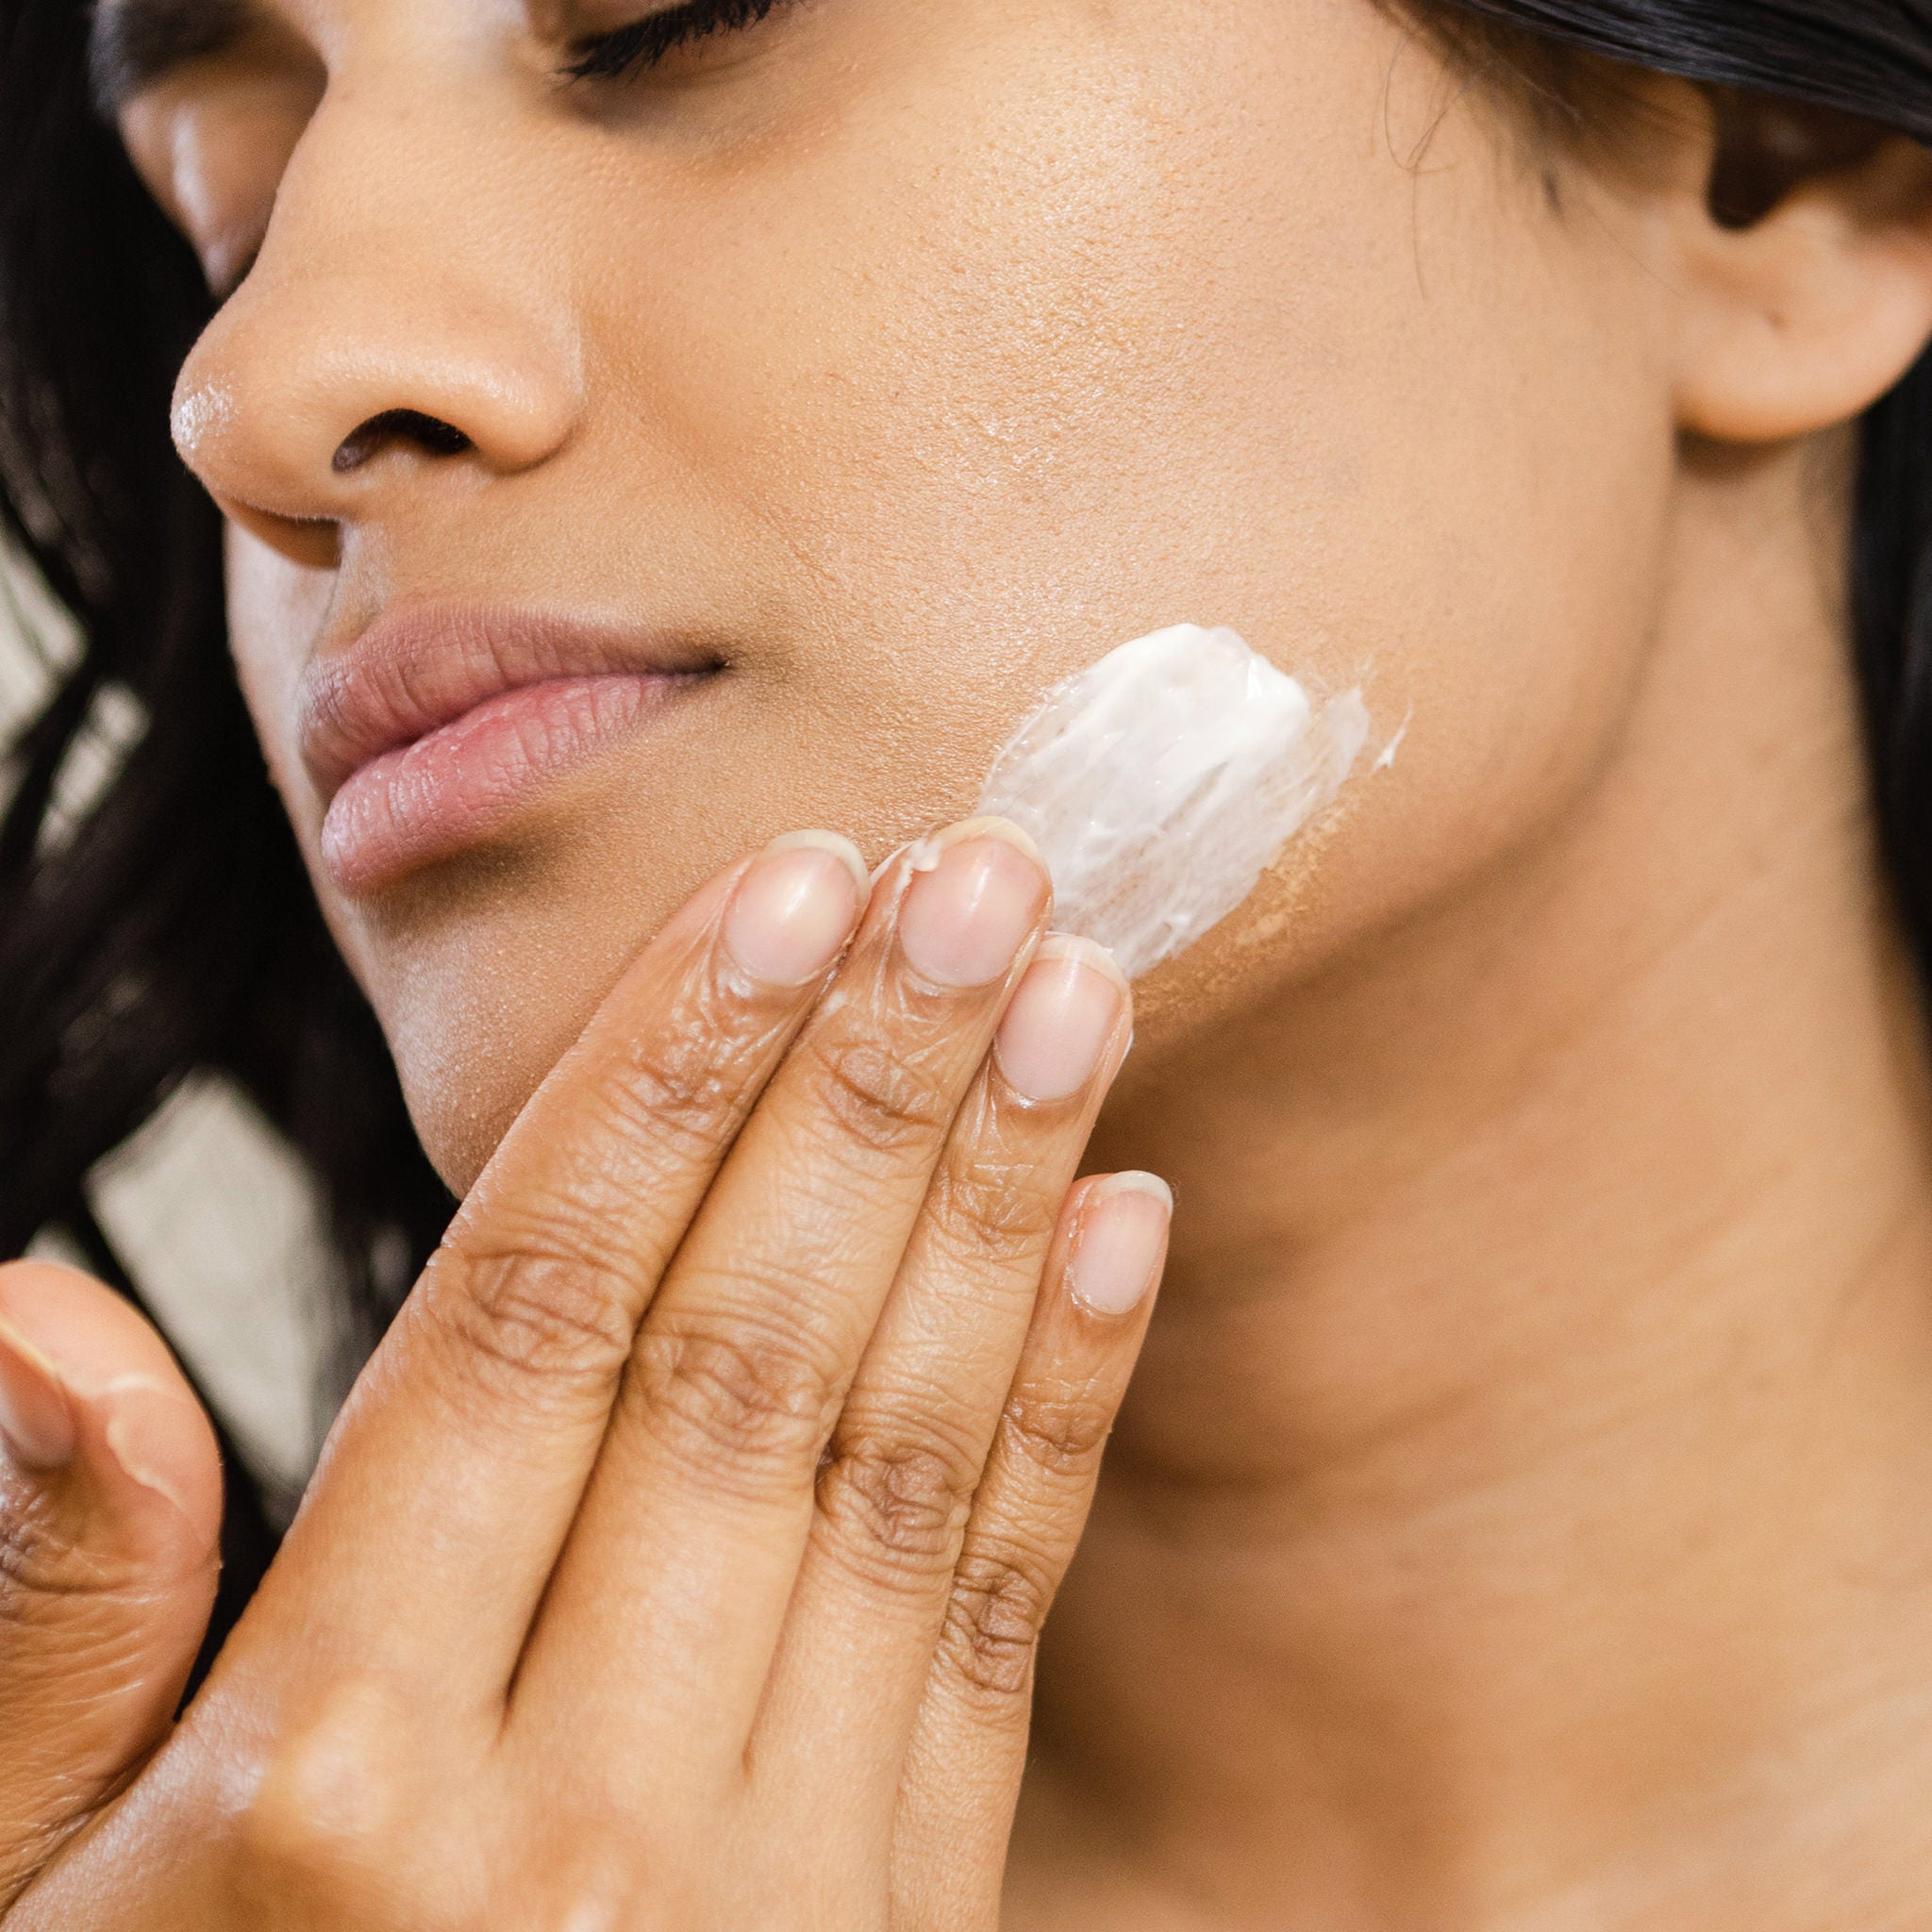 Image of woman putting moisturiser on their face.